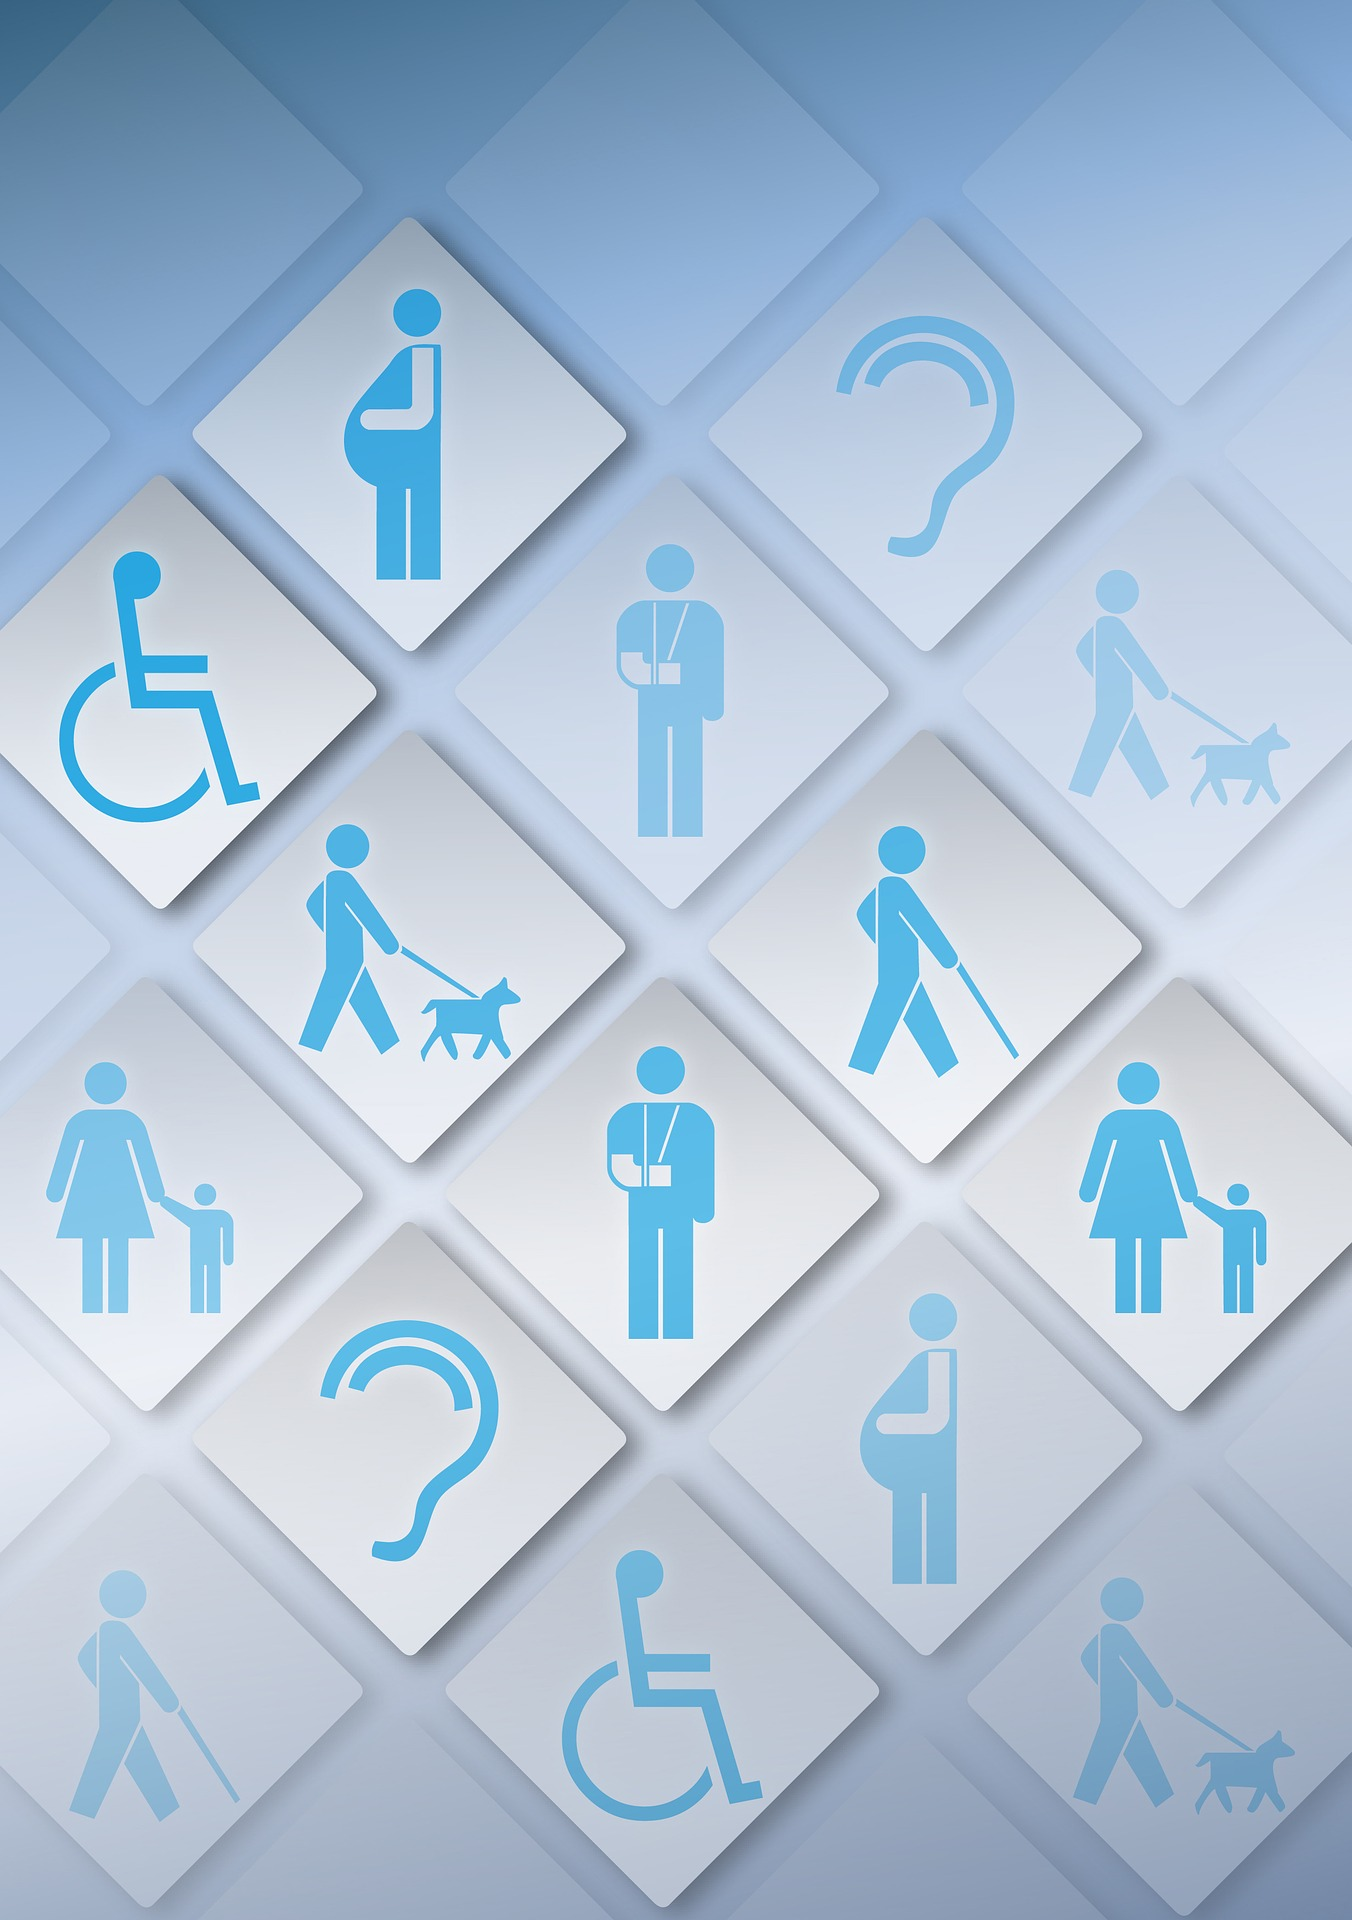 Accessibility image - Image by Cris Renma from Pixabay